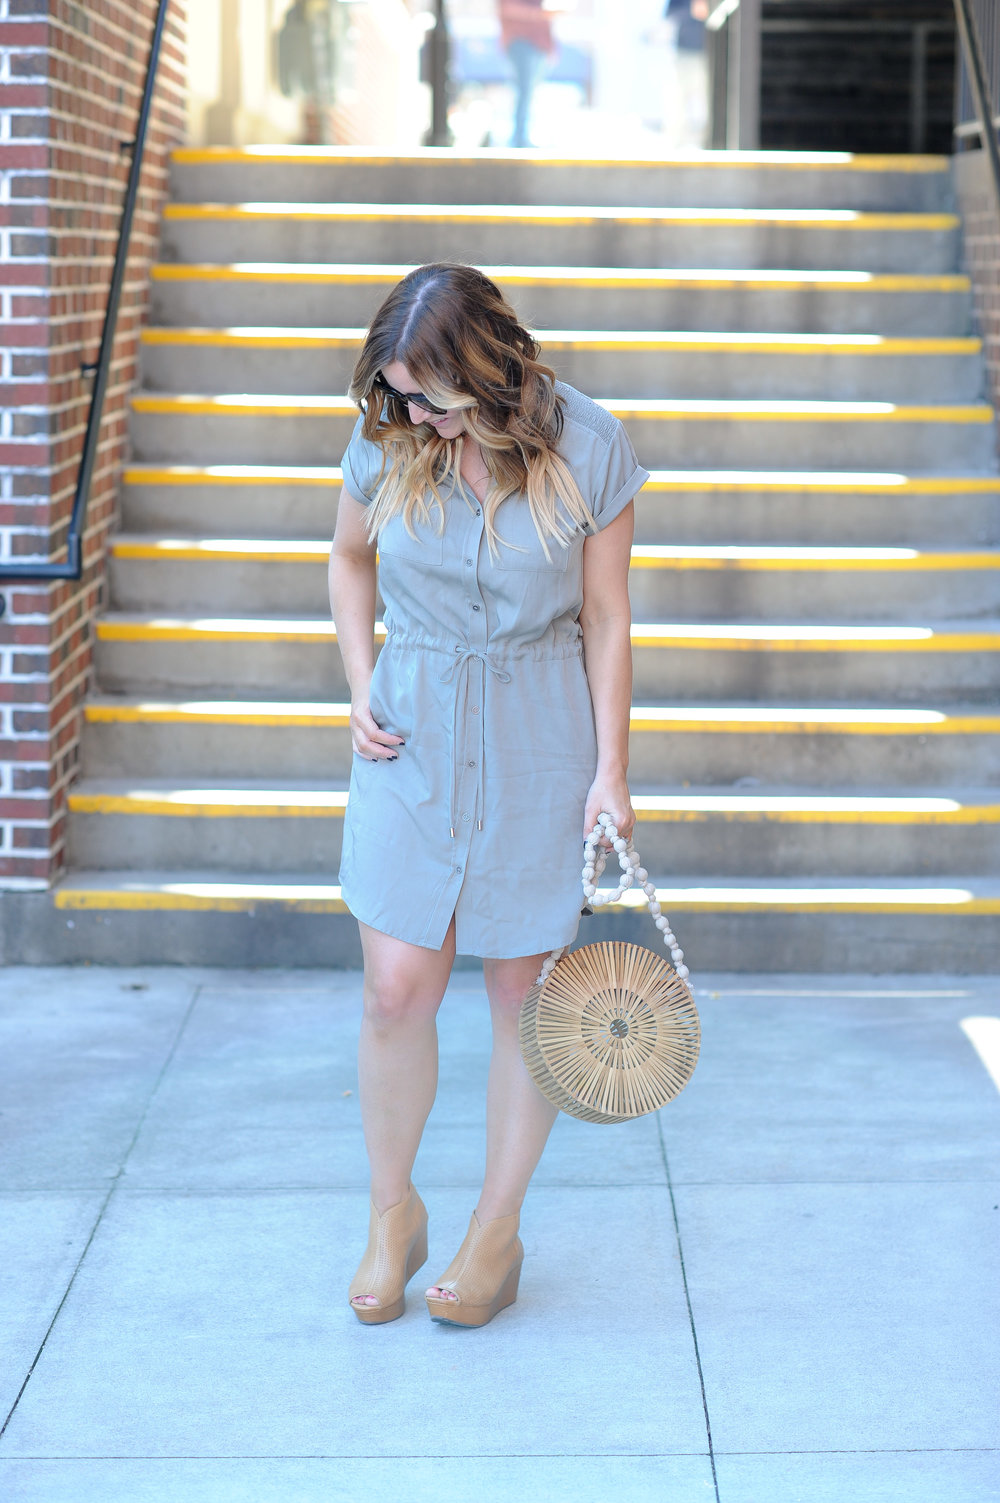 shirtdress 8.jpg